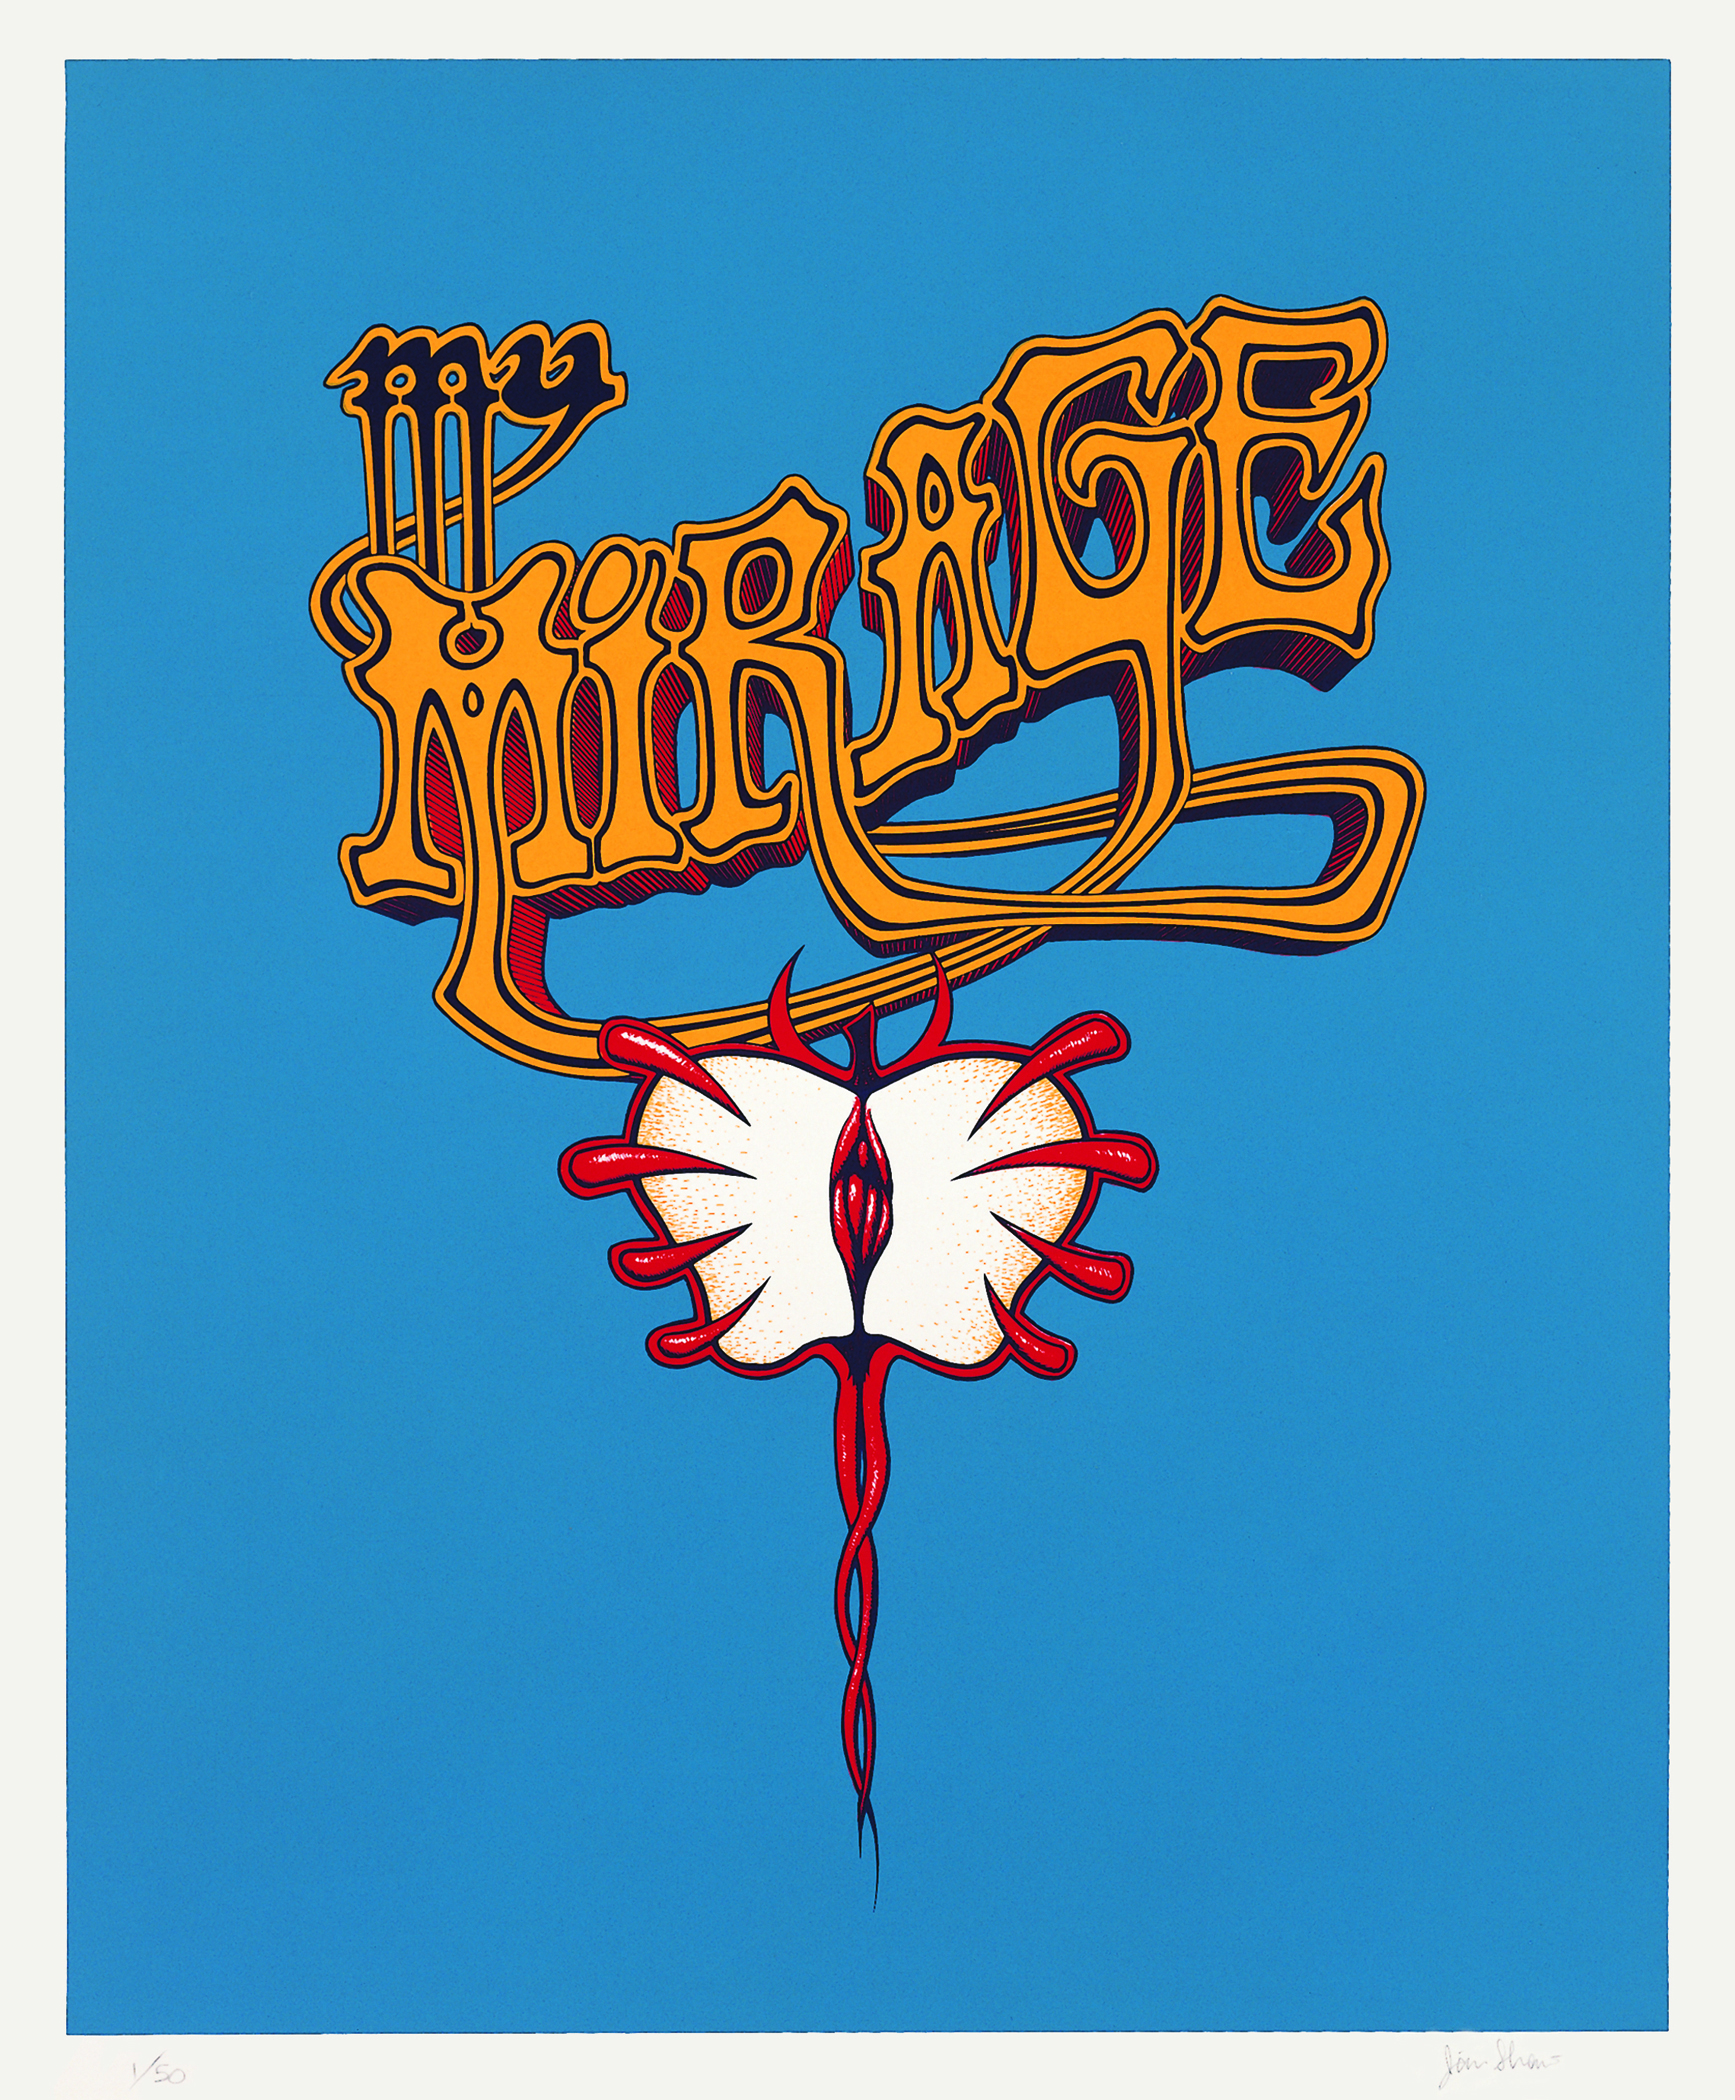 Jim Shaw, My Mirage Logo III, 1997 silkscreen print on paper. edition 55,5 x 47,5 cm - 21 7/8 x 18 3/4 inches (framed)